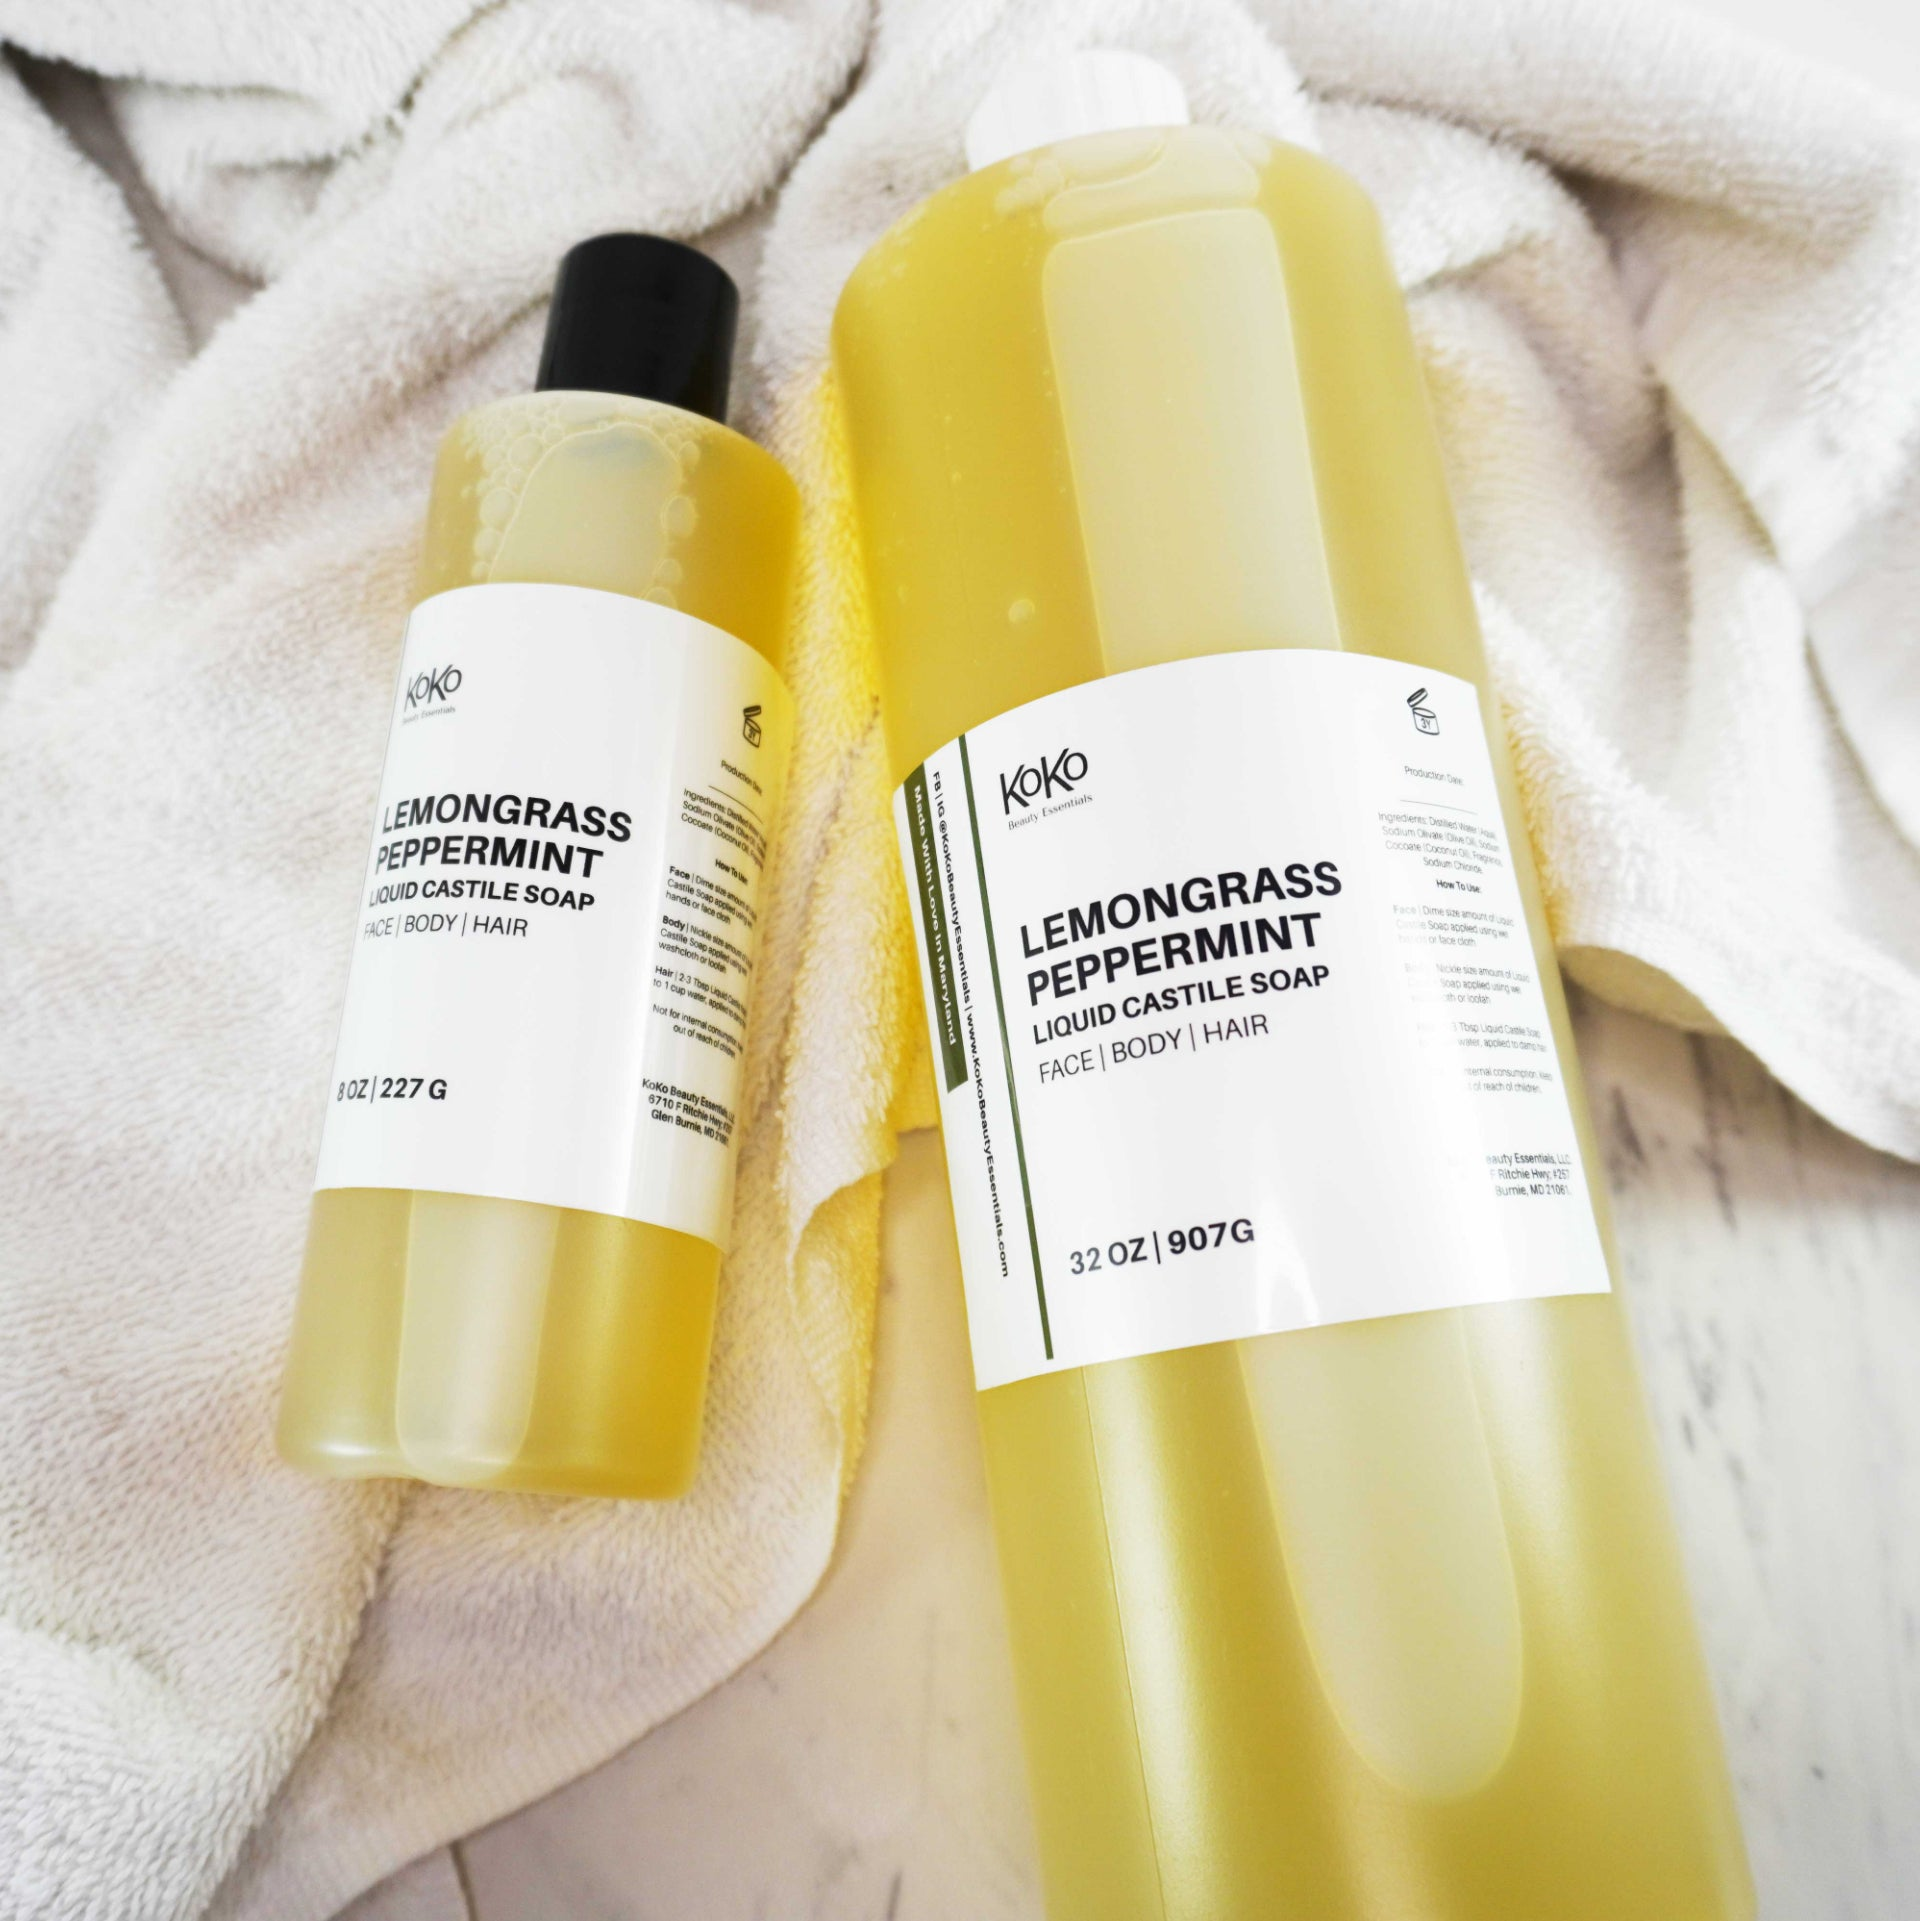 Lemongrass Peppermint Liquid Castile Soap